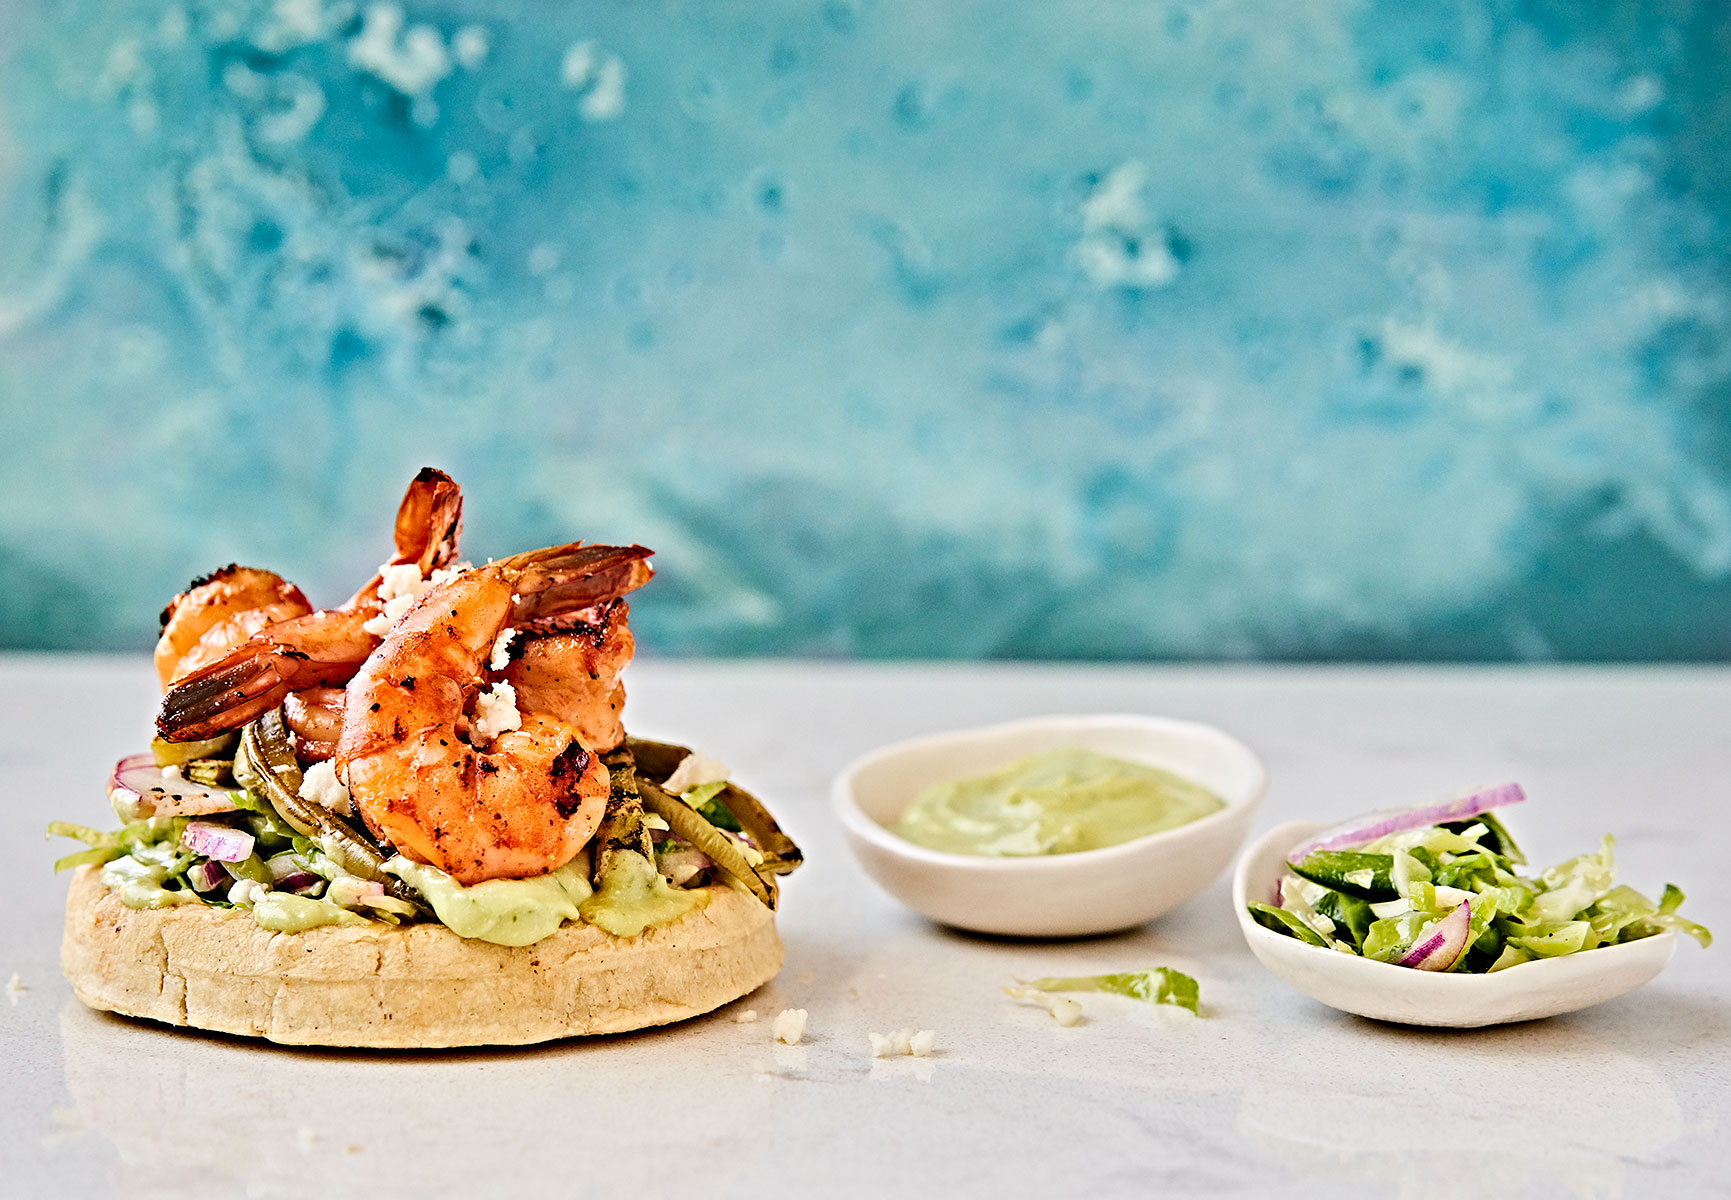 Marinated shrimp sopes mexican food on blue background.